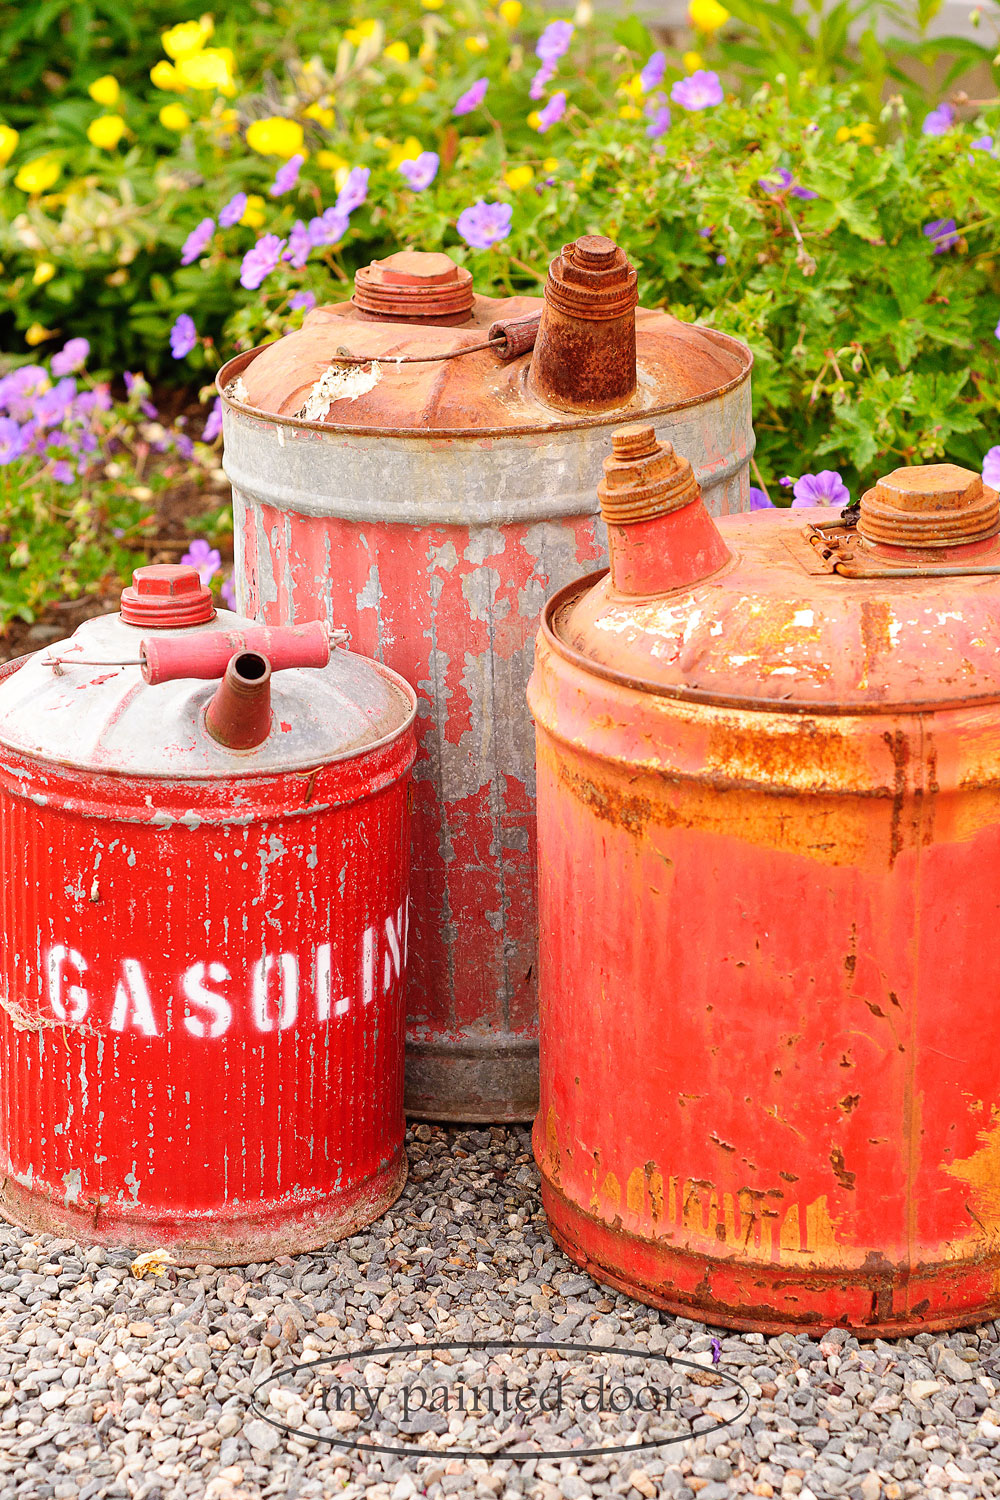 Vintage gas cans